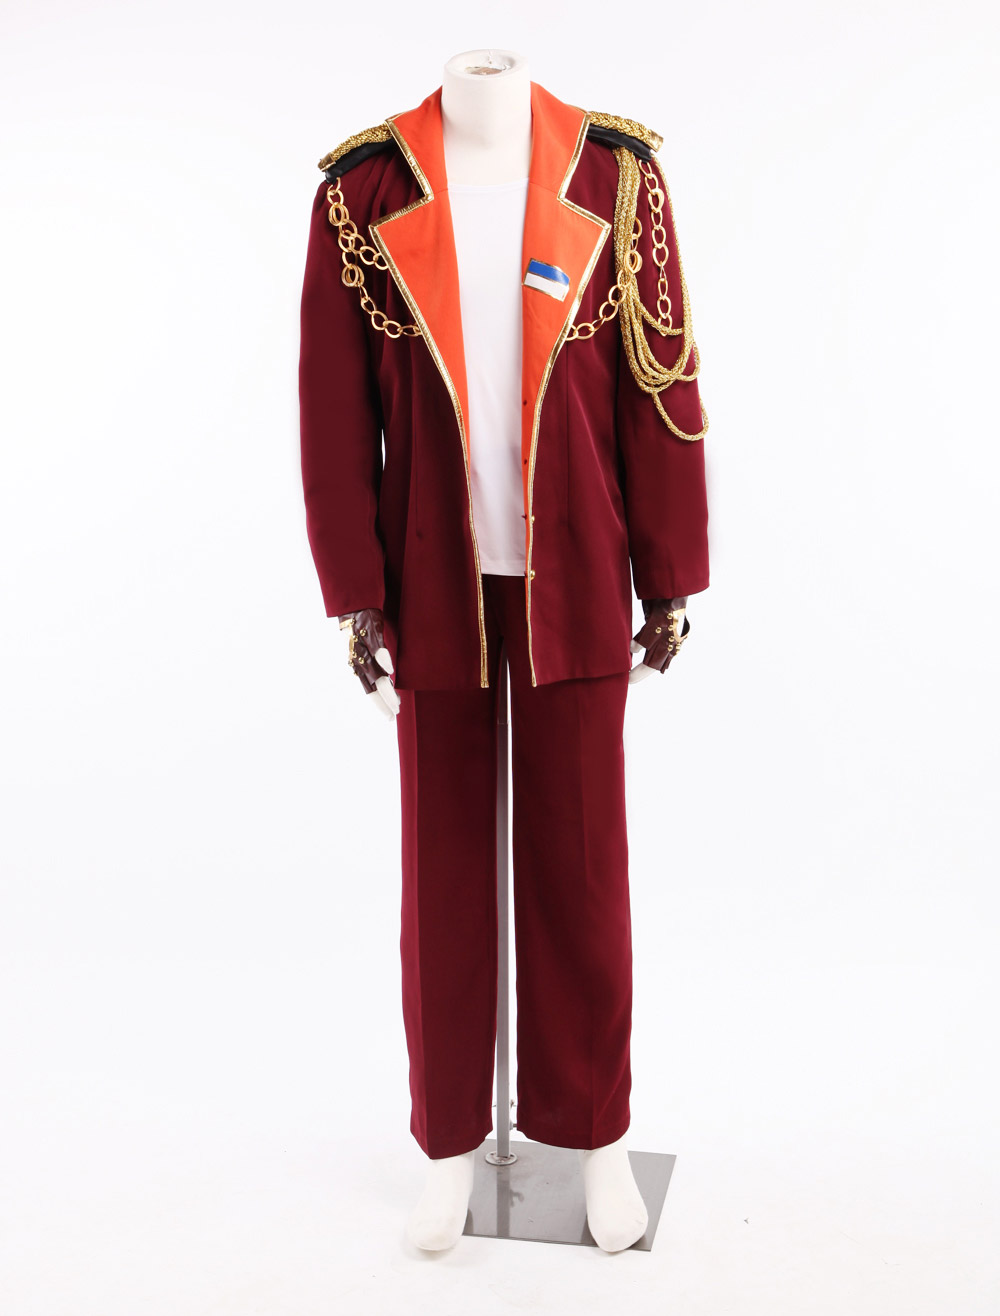 Uta no Prince sama Jinguuji Ren Military uniform Cosplay Costume